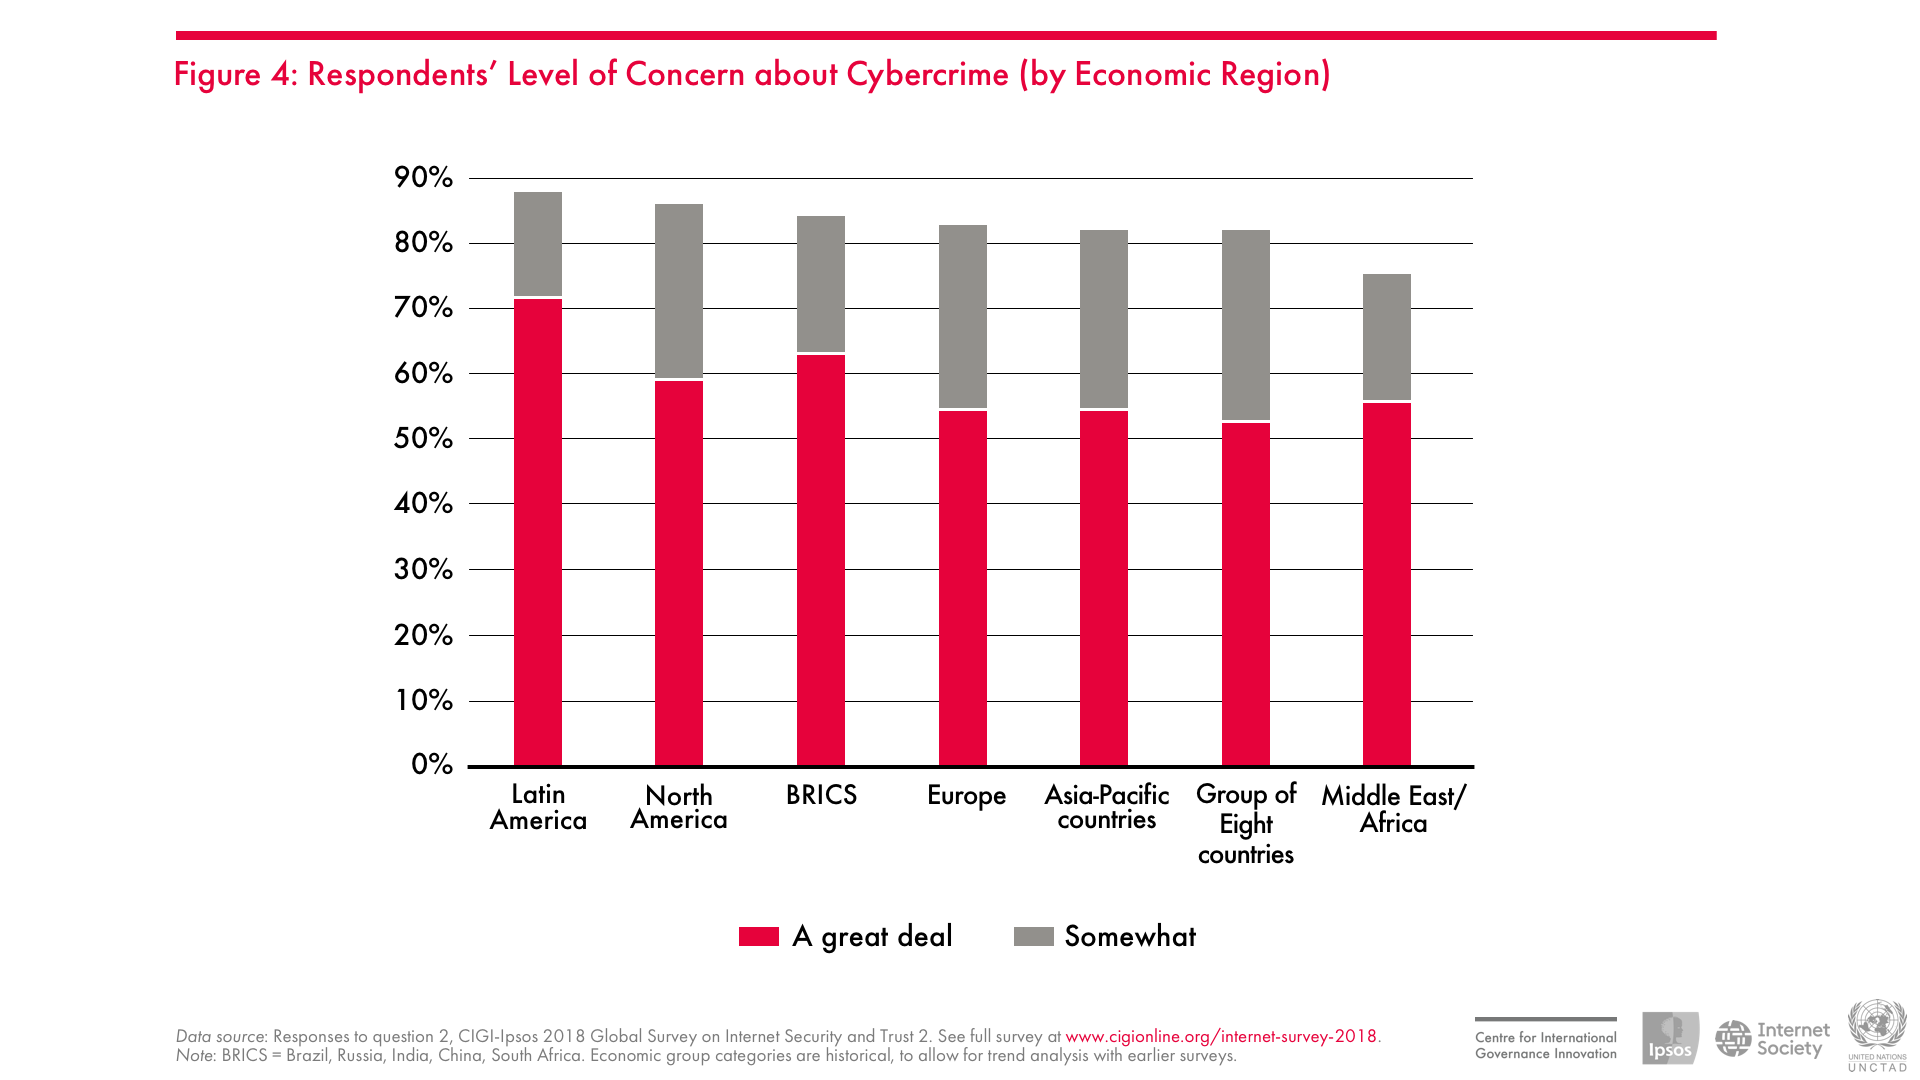 Respondents' Level of Concern about Cybercrime (by Economic Region)